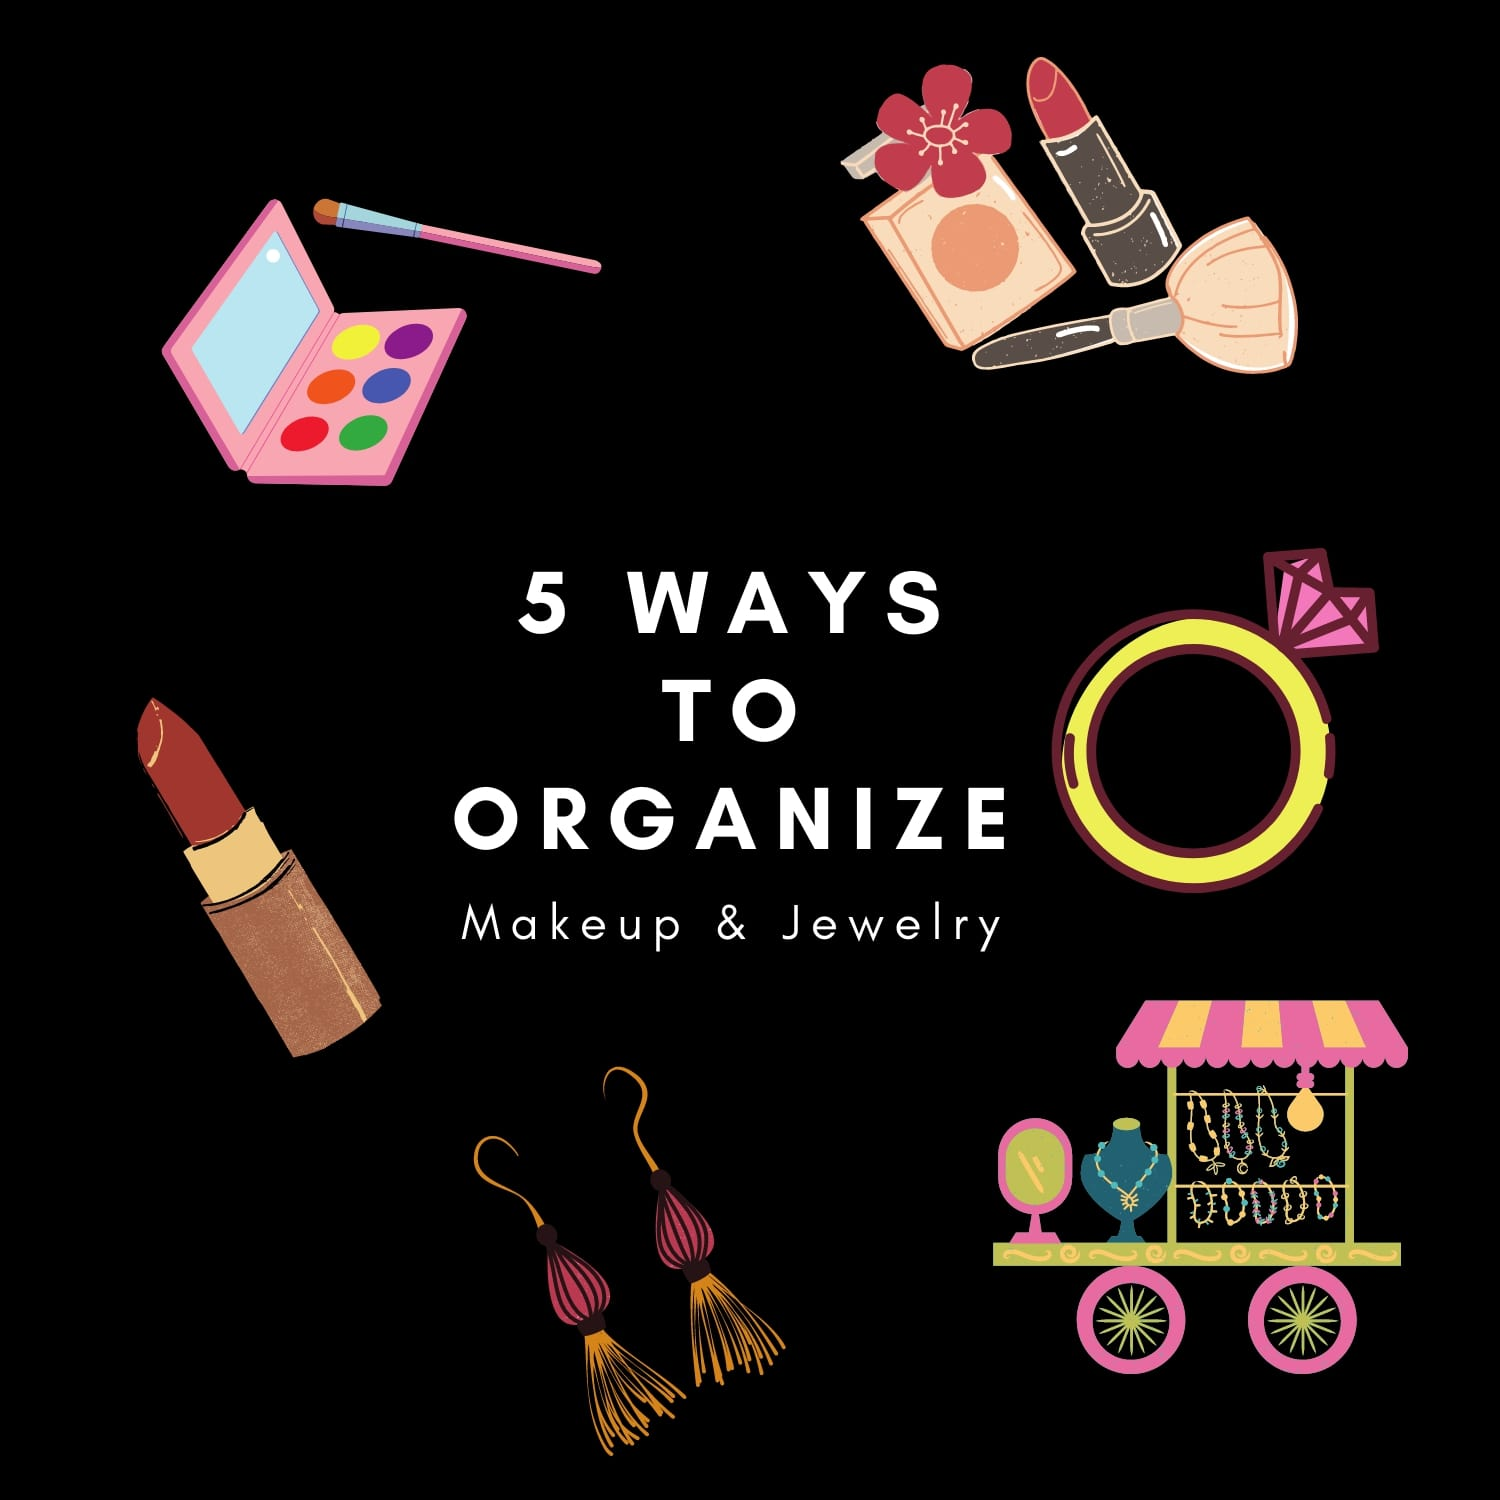 5 Smart Ways to Organize Jewelry and Makeup